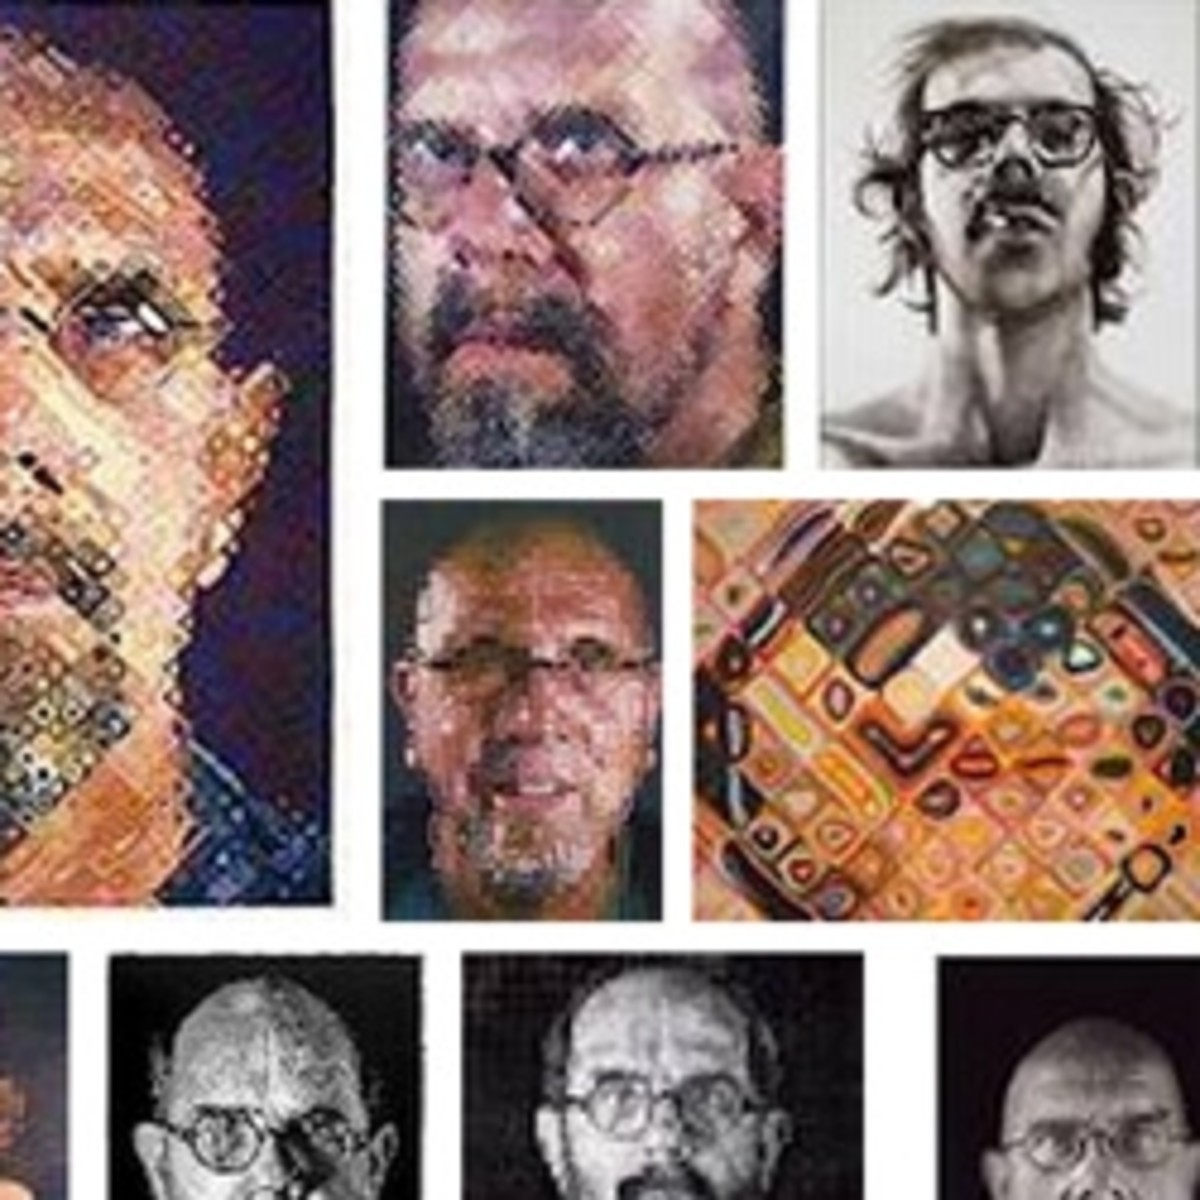 About Chuck Close - American Artist